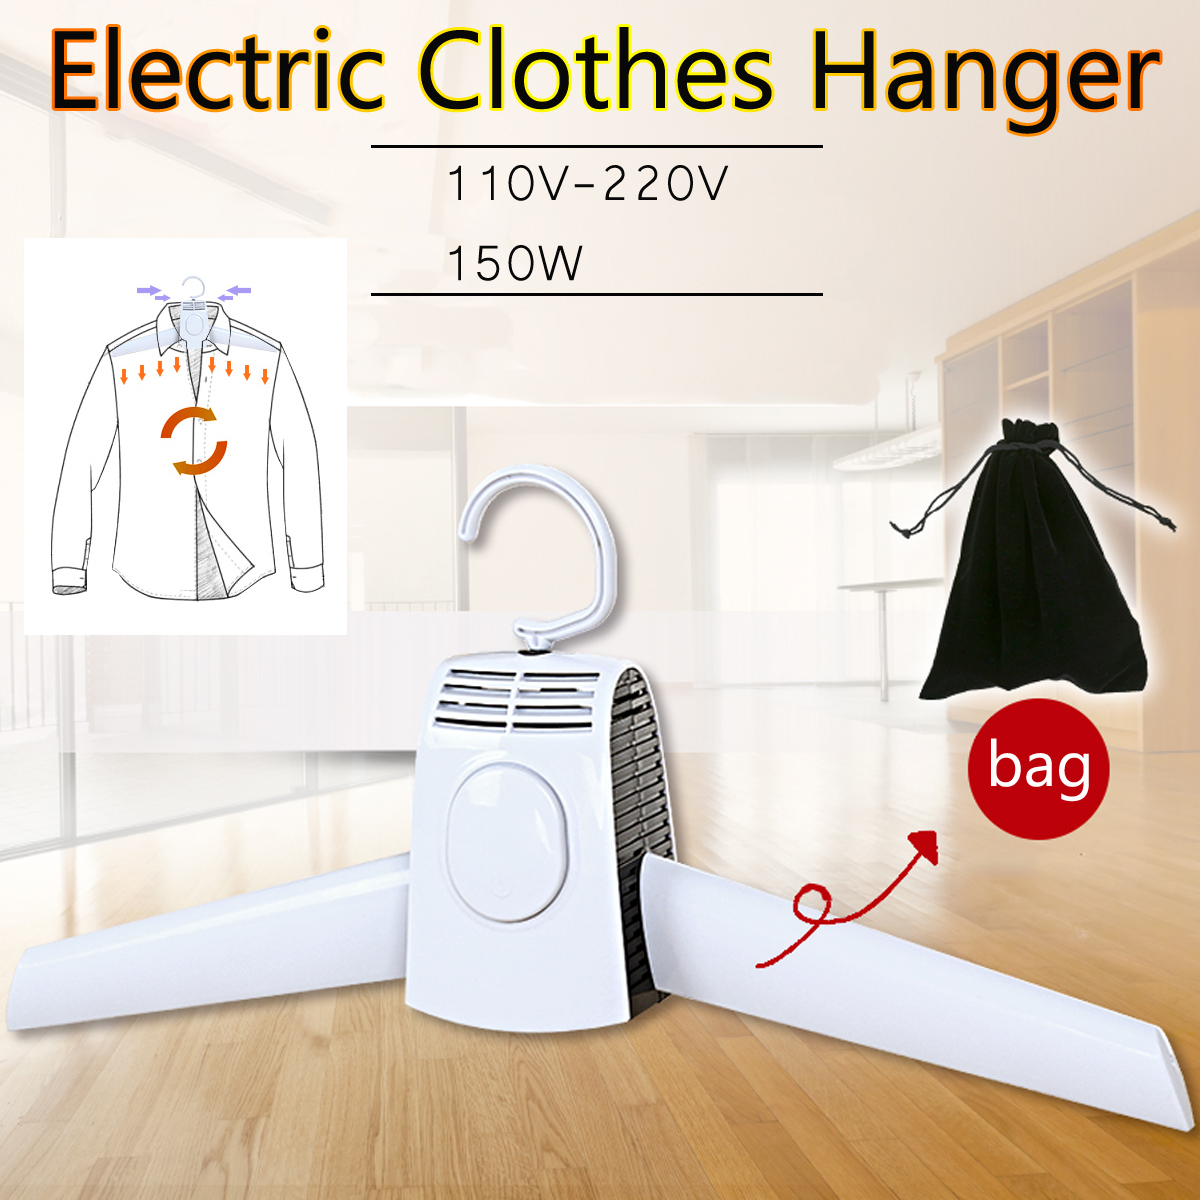 Portable Hangers Clothes Electric Laundry Dryer Smart Shoes Dryer Rack Coat For Winter Home Travel Rod Rack Hangers